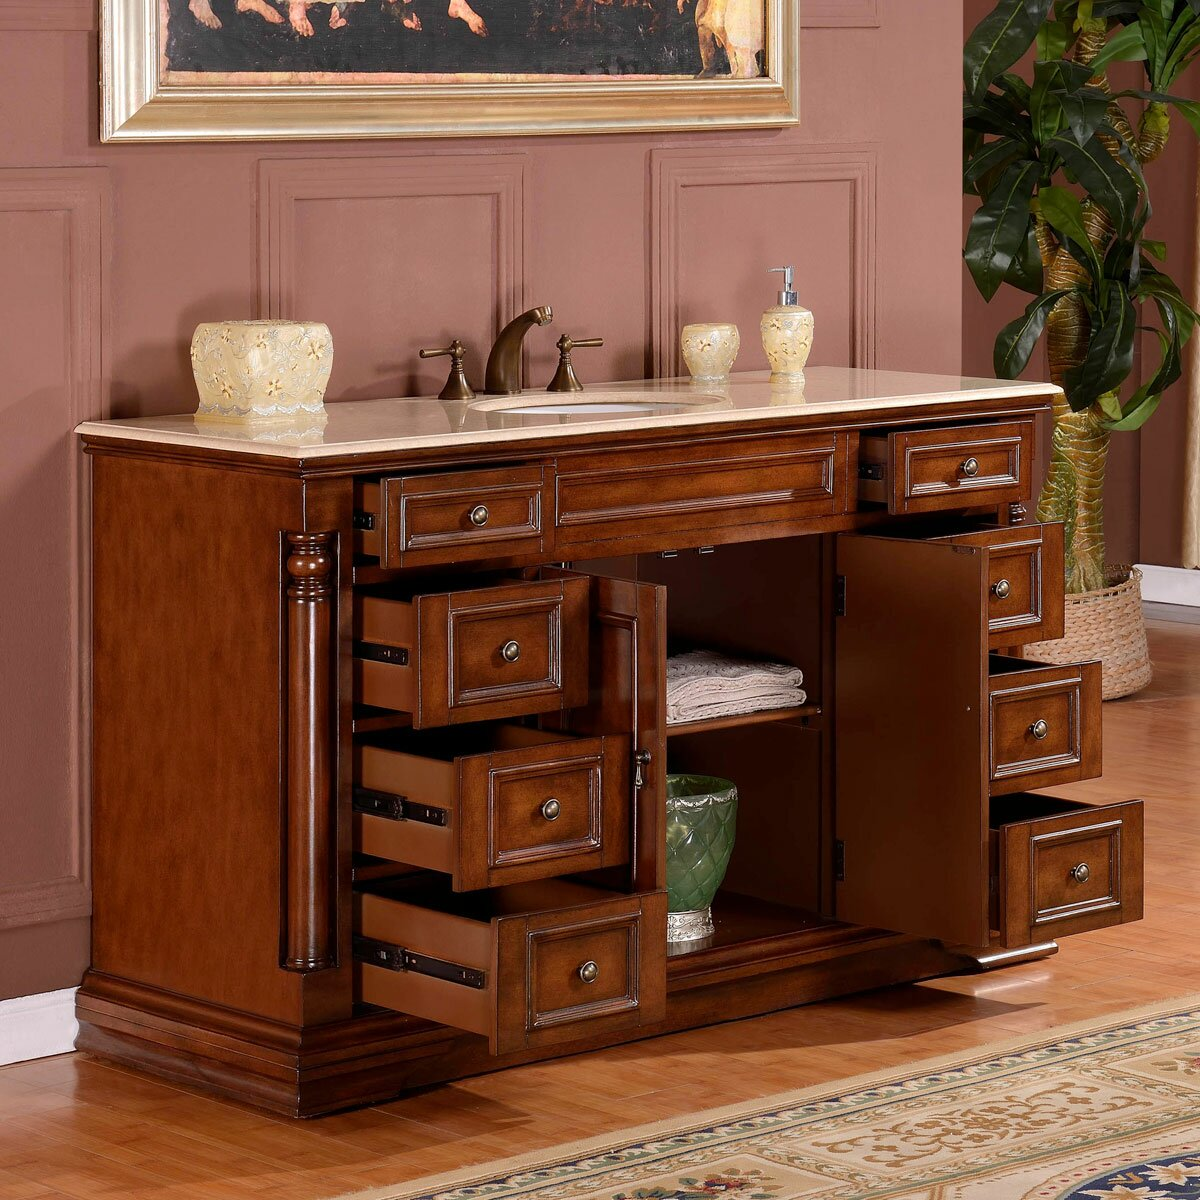 Silkroad exclusive 58 single sink cabinet bathroom vanity - Wayfair furniture bathroom vanities ...